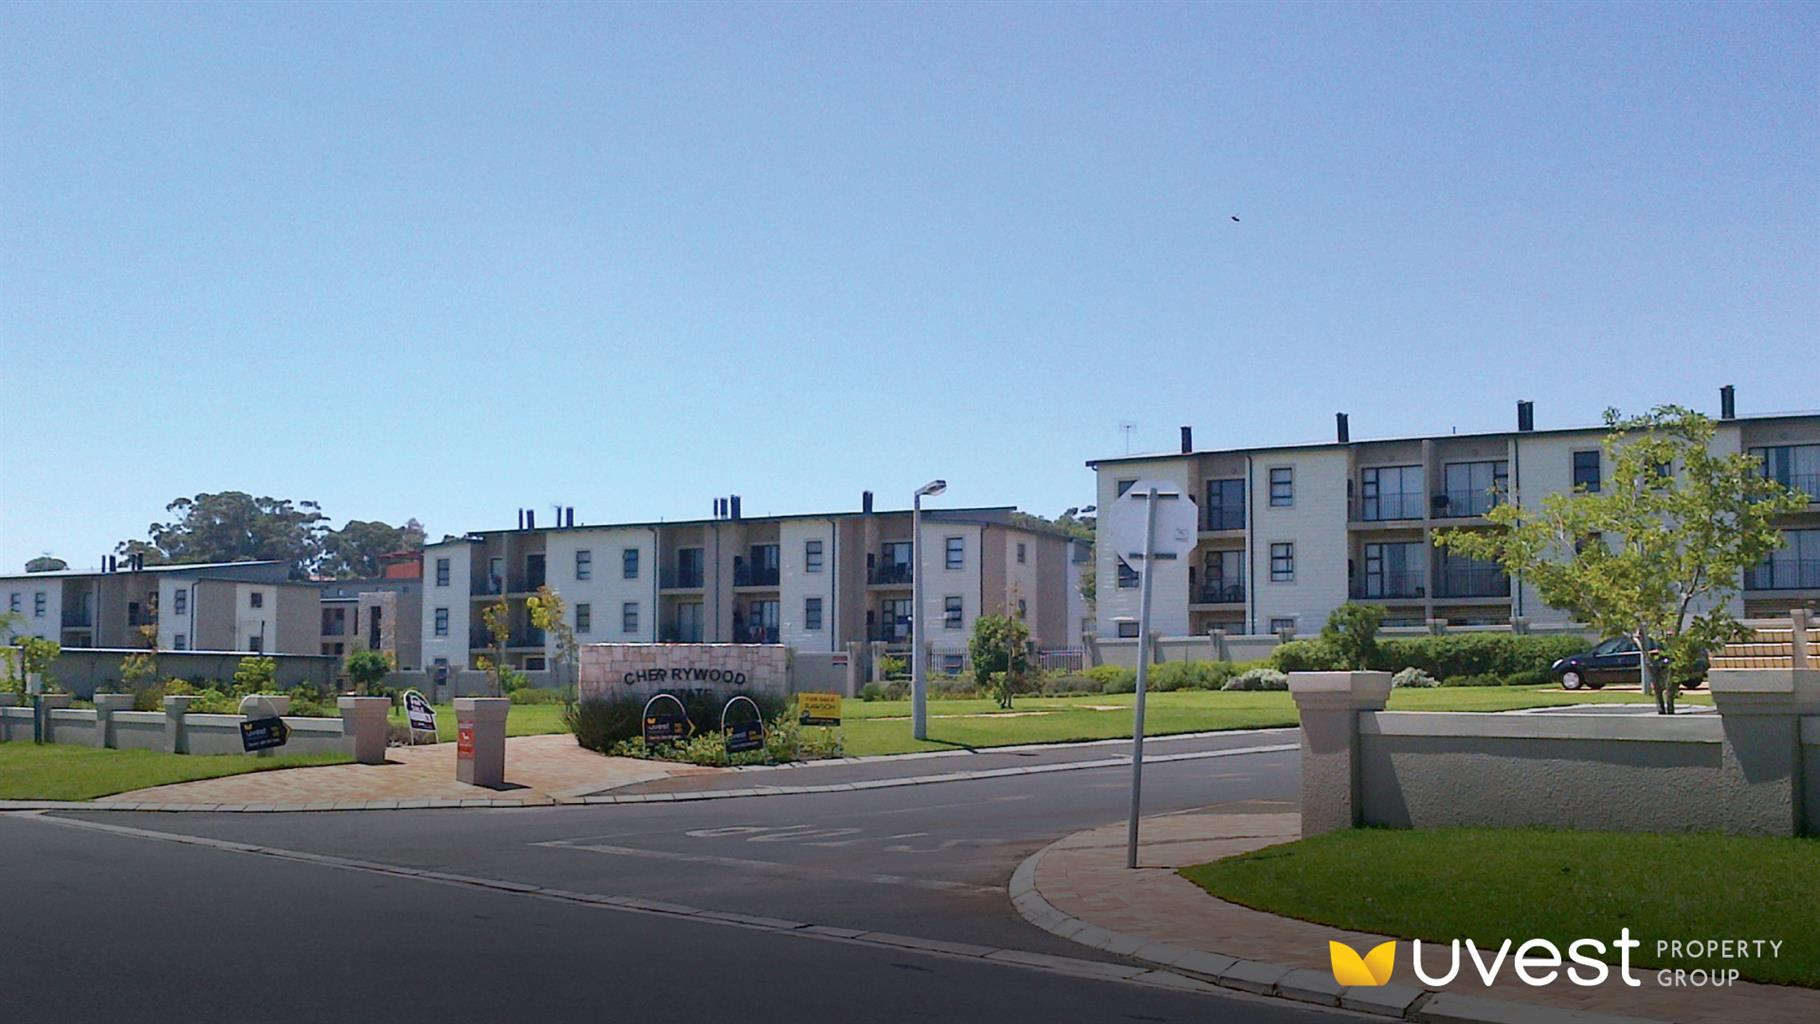 SPECIAL OFFER OF ONE MONTH DEPOSIT AND REDUCED RENT FOR 2 BEDROOM APARTMENT, CHERRYWOOD ESTATE, SONSTRAAL HEIGHTS